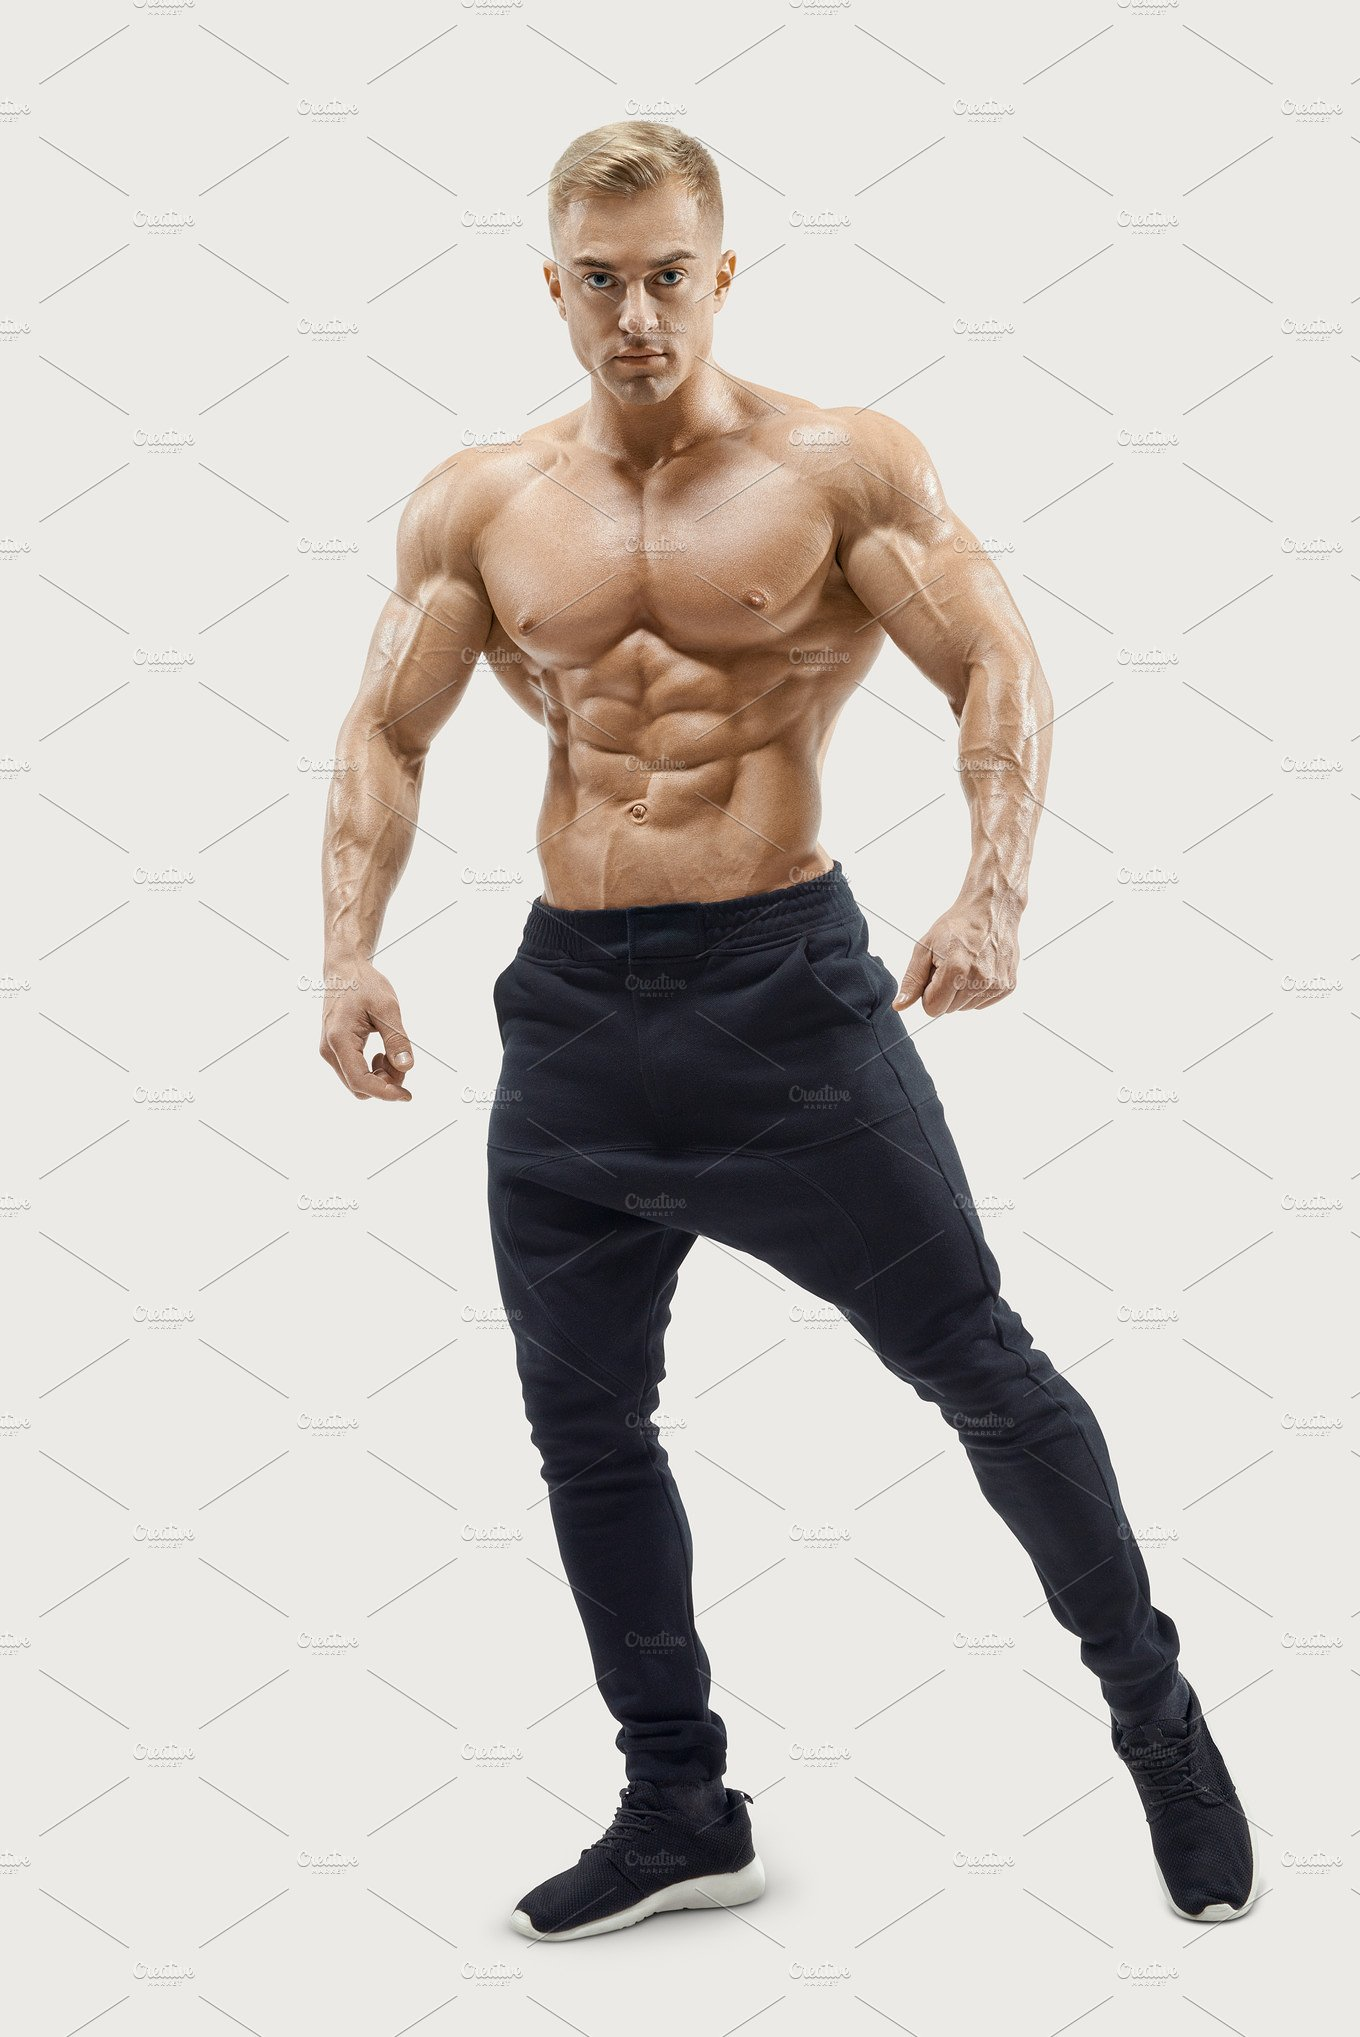 Young fitness male model posing ~ Sports Photos ~ Creative Market